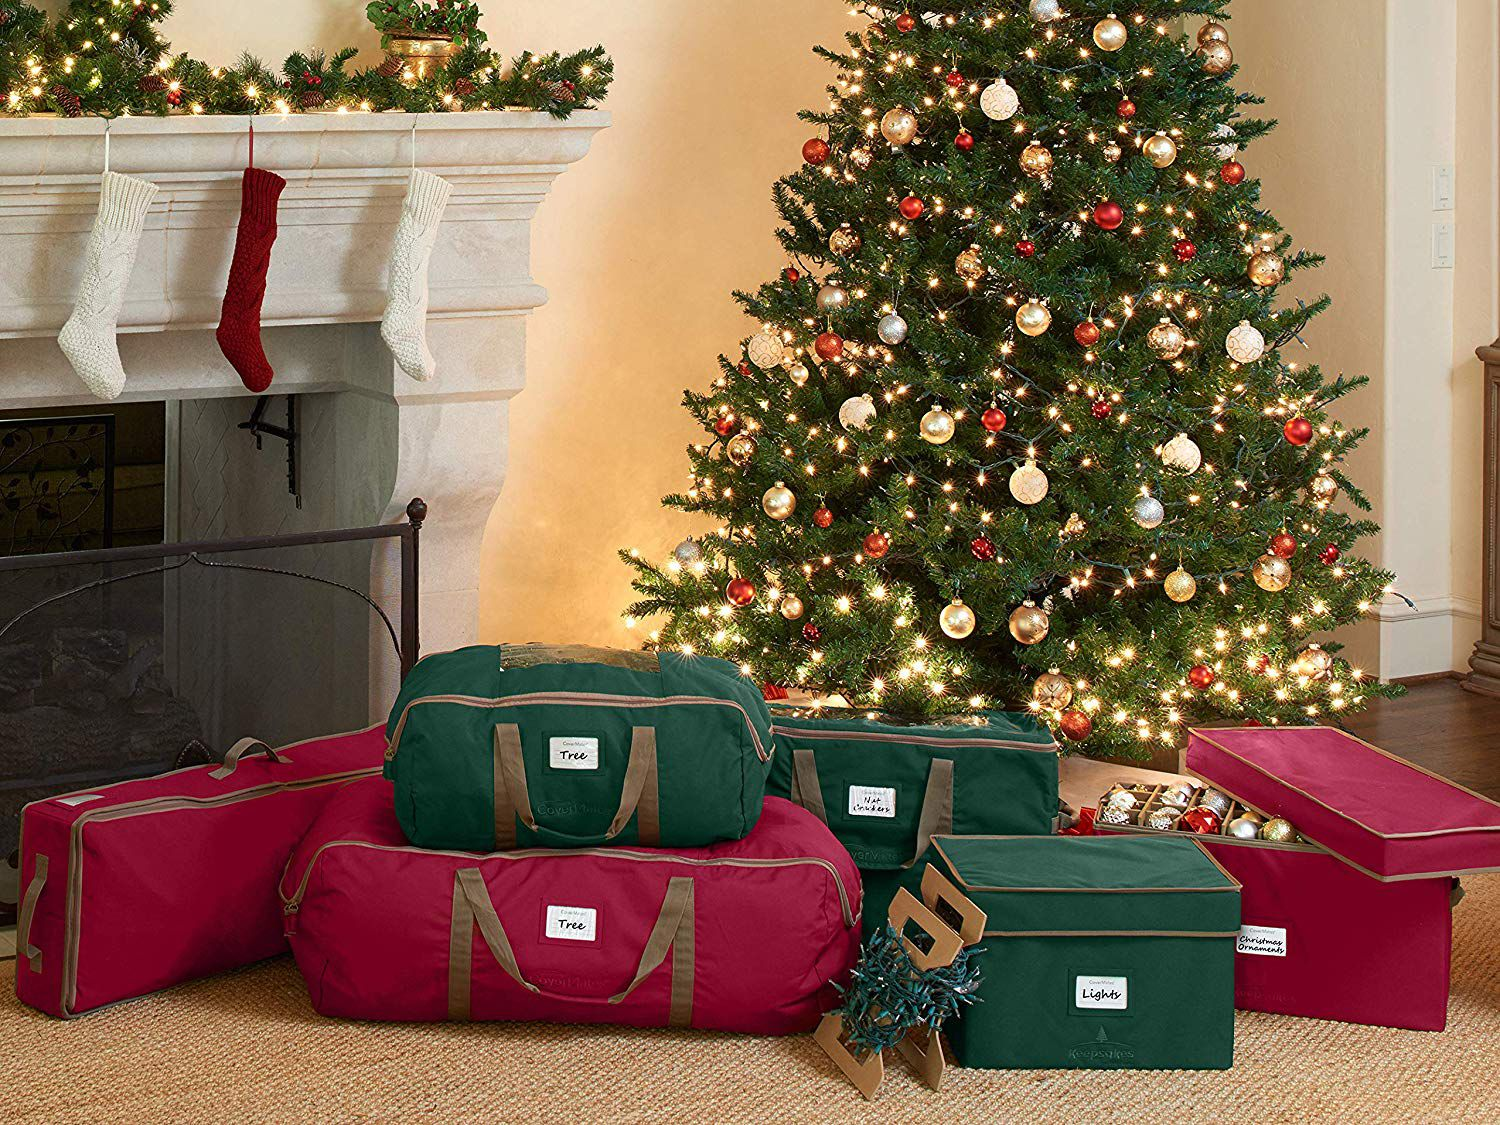 Christmas Tree Bags.The 8 Best Christmas Tree Bags Of 2019